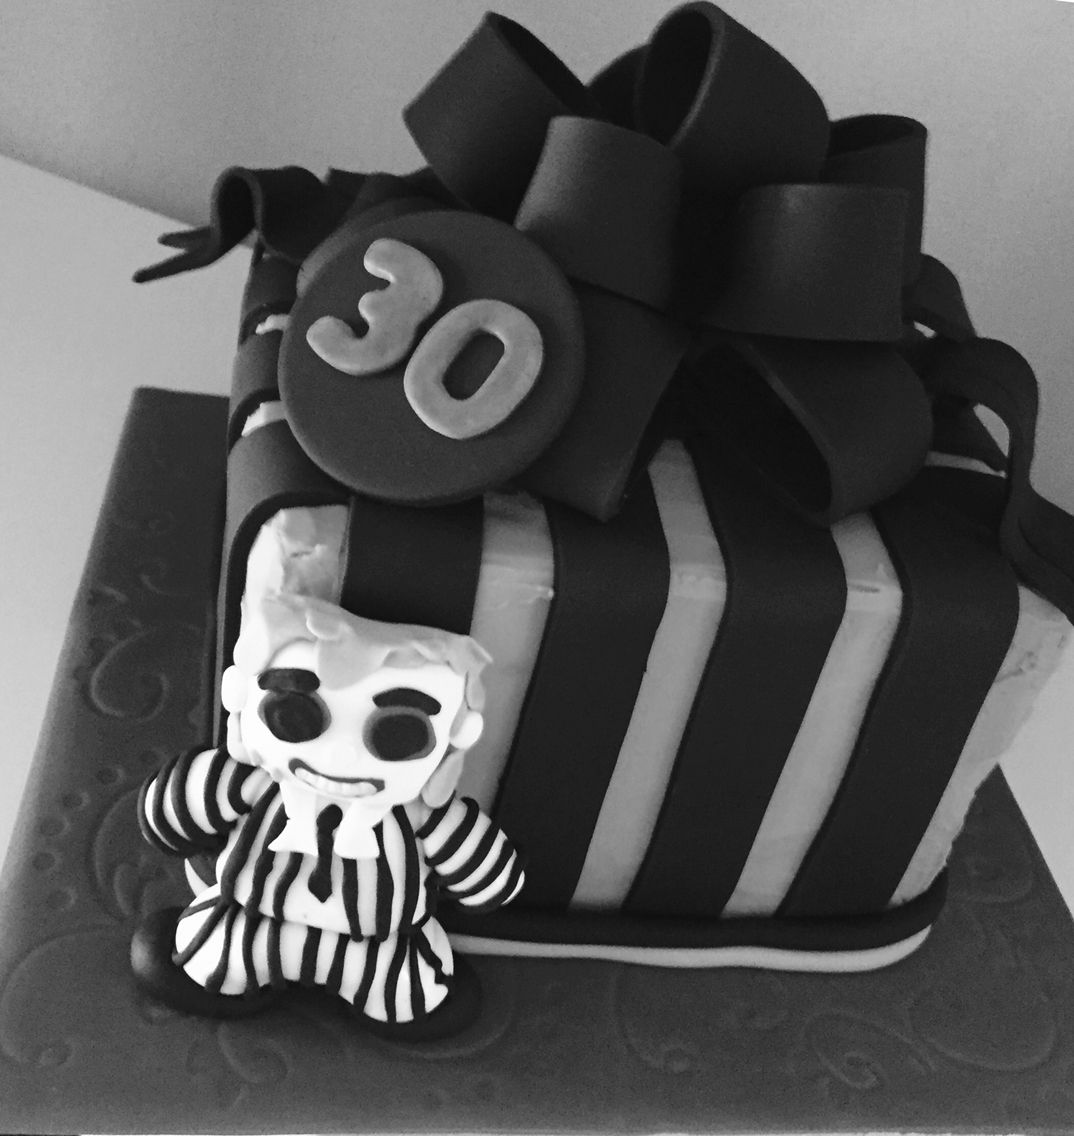 Beetlejuice 30th birthday cake 30 birthday cake, Cake